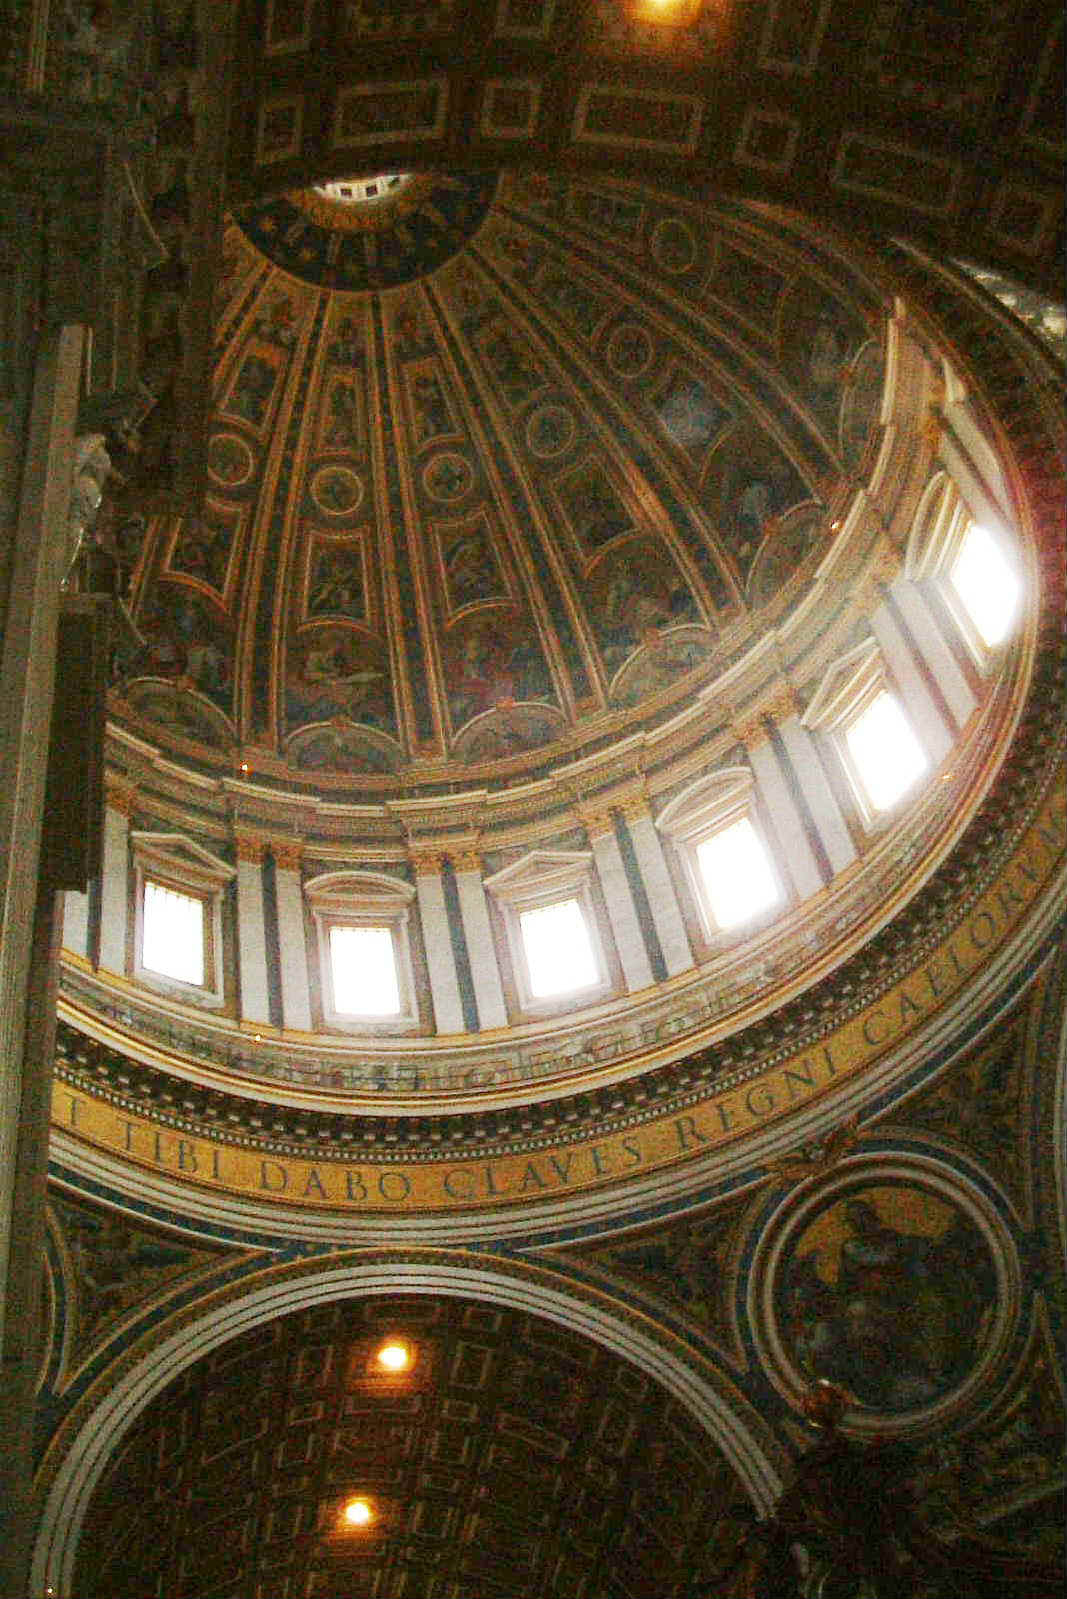 8- DSCF0007 St. Peters Dome1.JPG (198513 bytes)